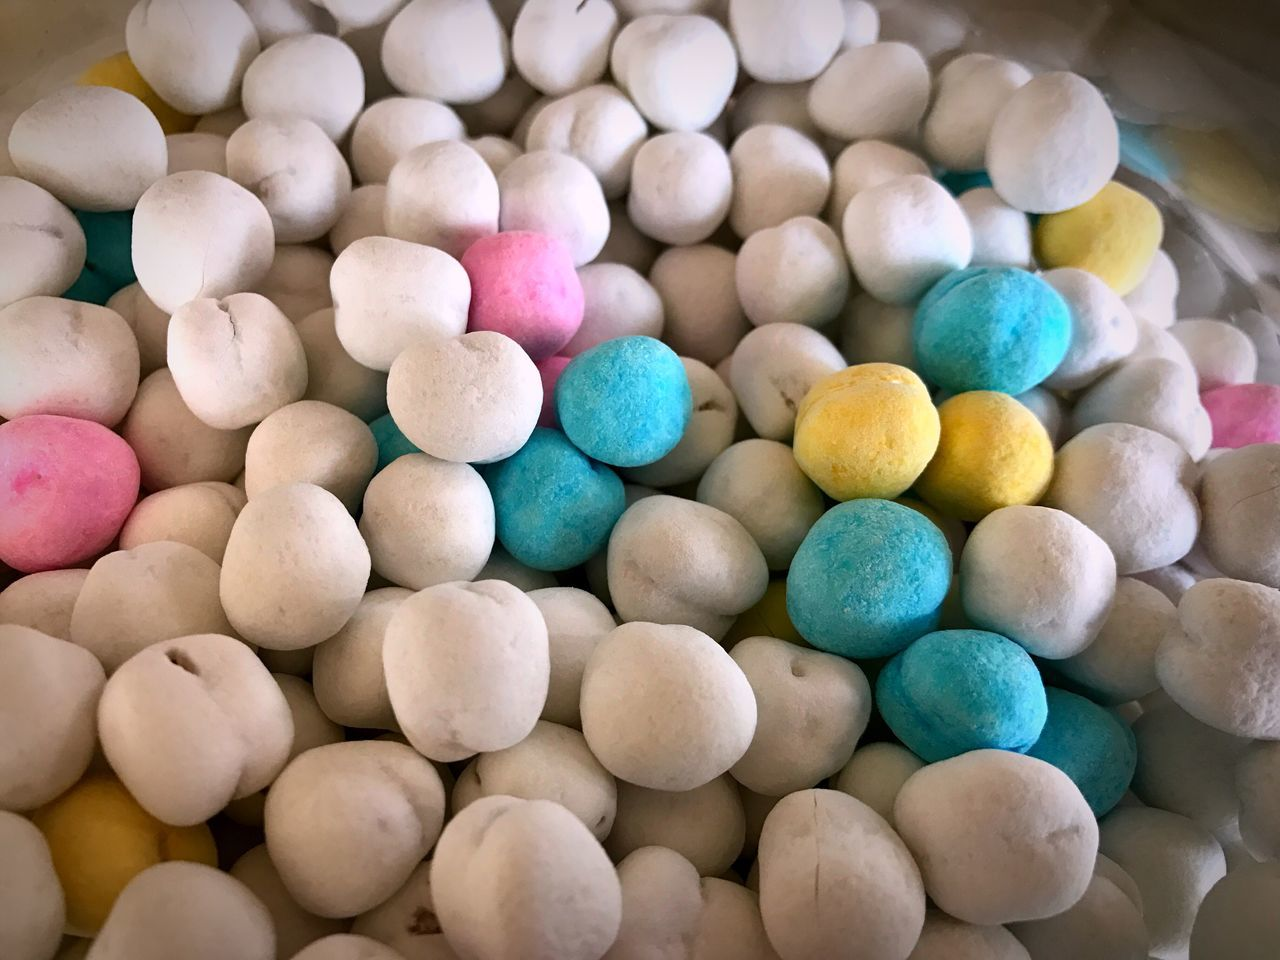 multi colored, sweet food, large group of objects, still life, variation, easter, food and drink, easter egg, food, indoors, no people, indulgence, temptation, candy, dessert, close-up, day